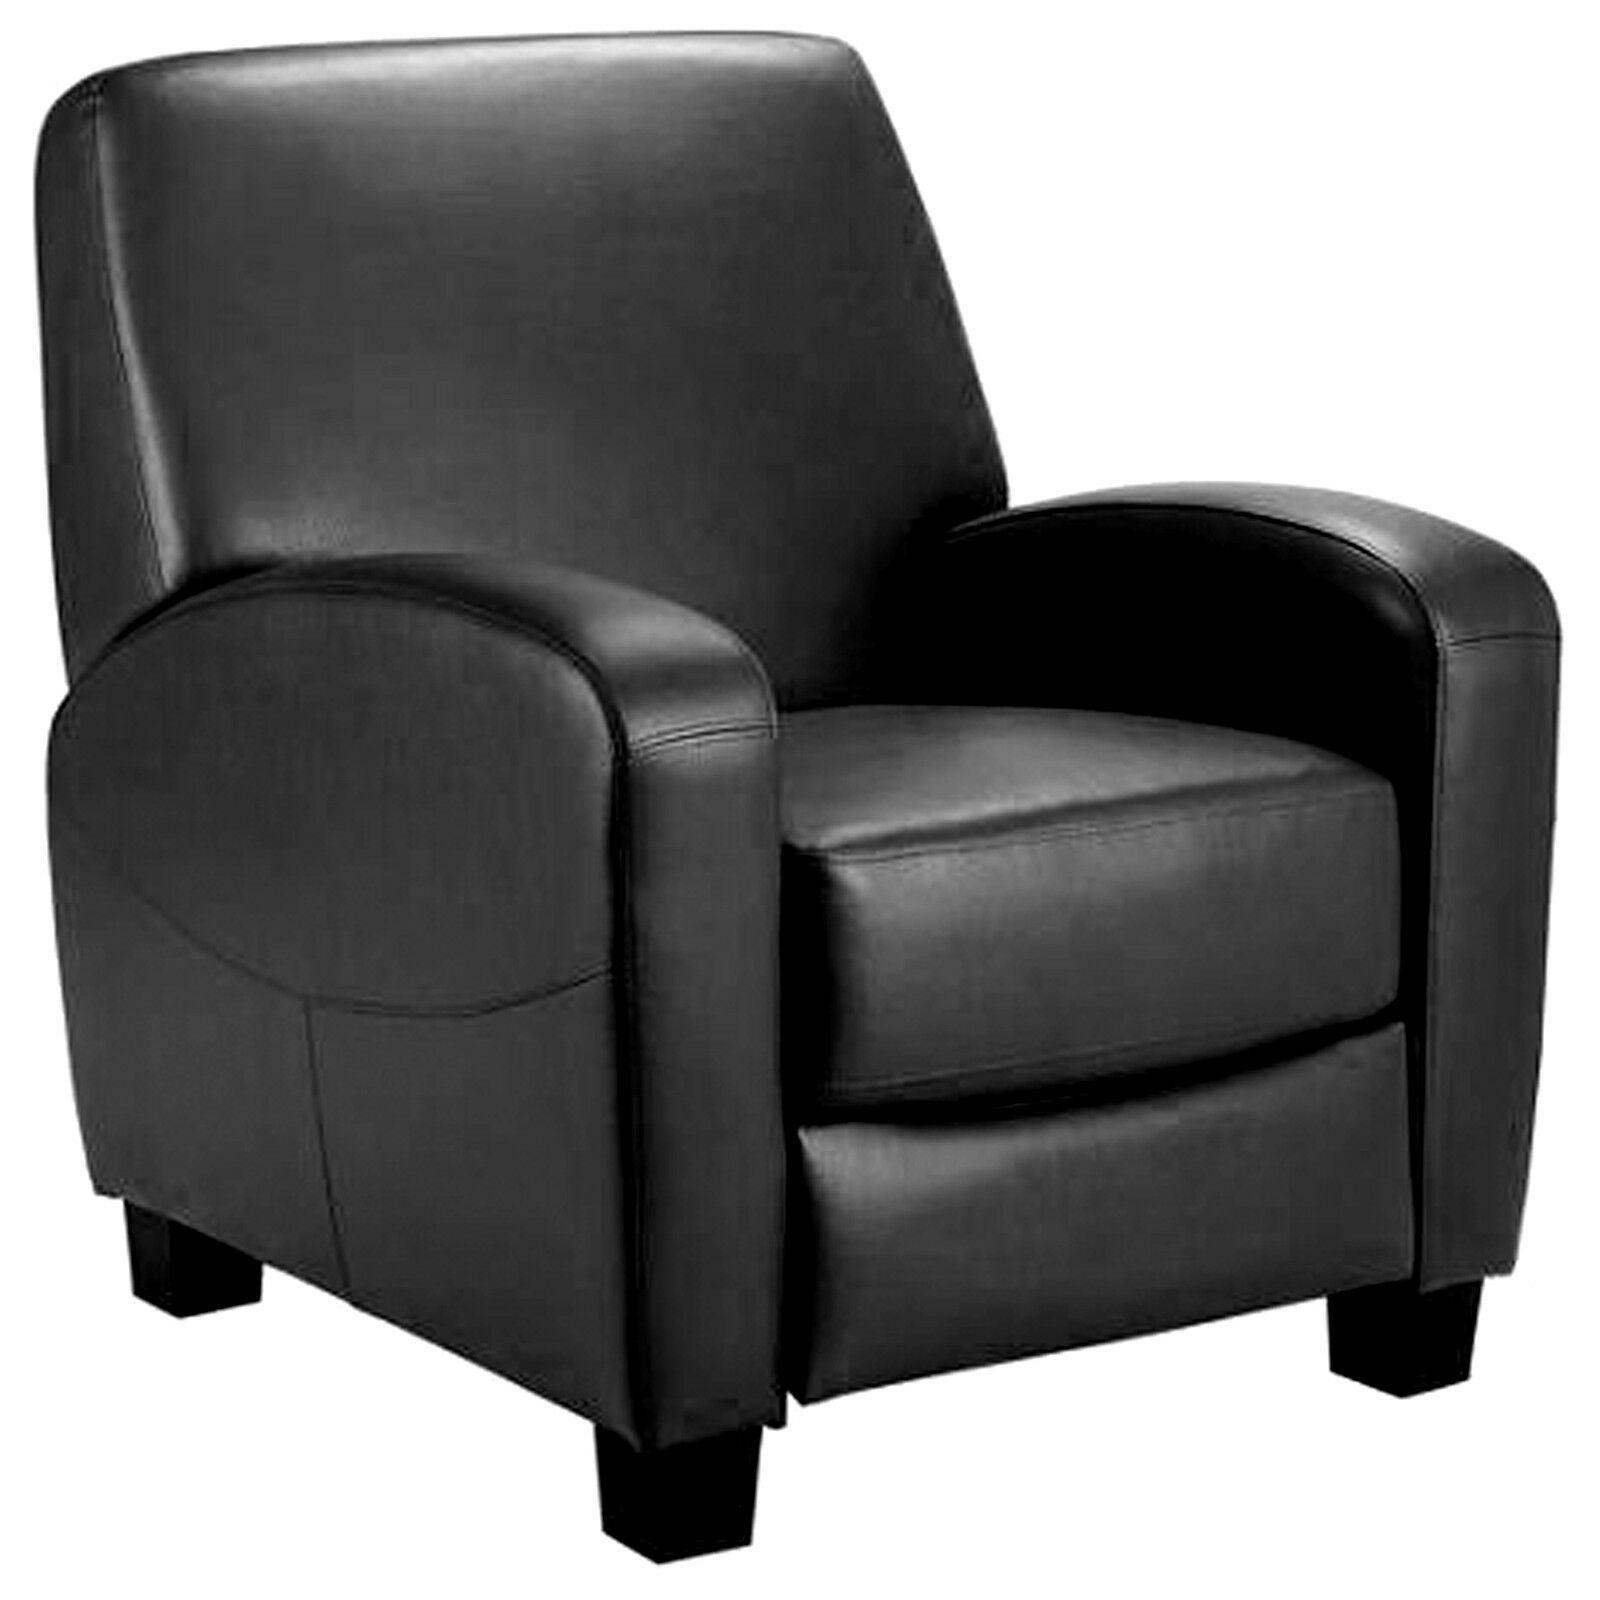 Home Theater Recliner Black Faux Leather Lounge Club Chair ...